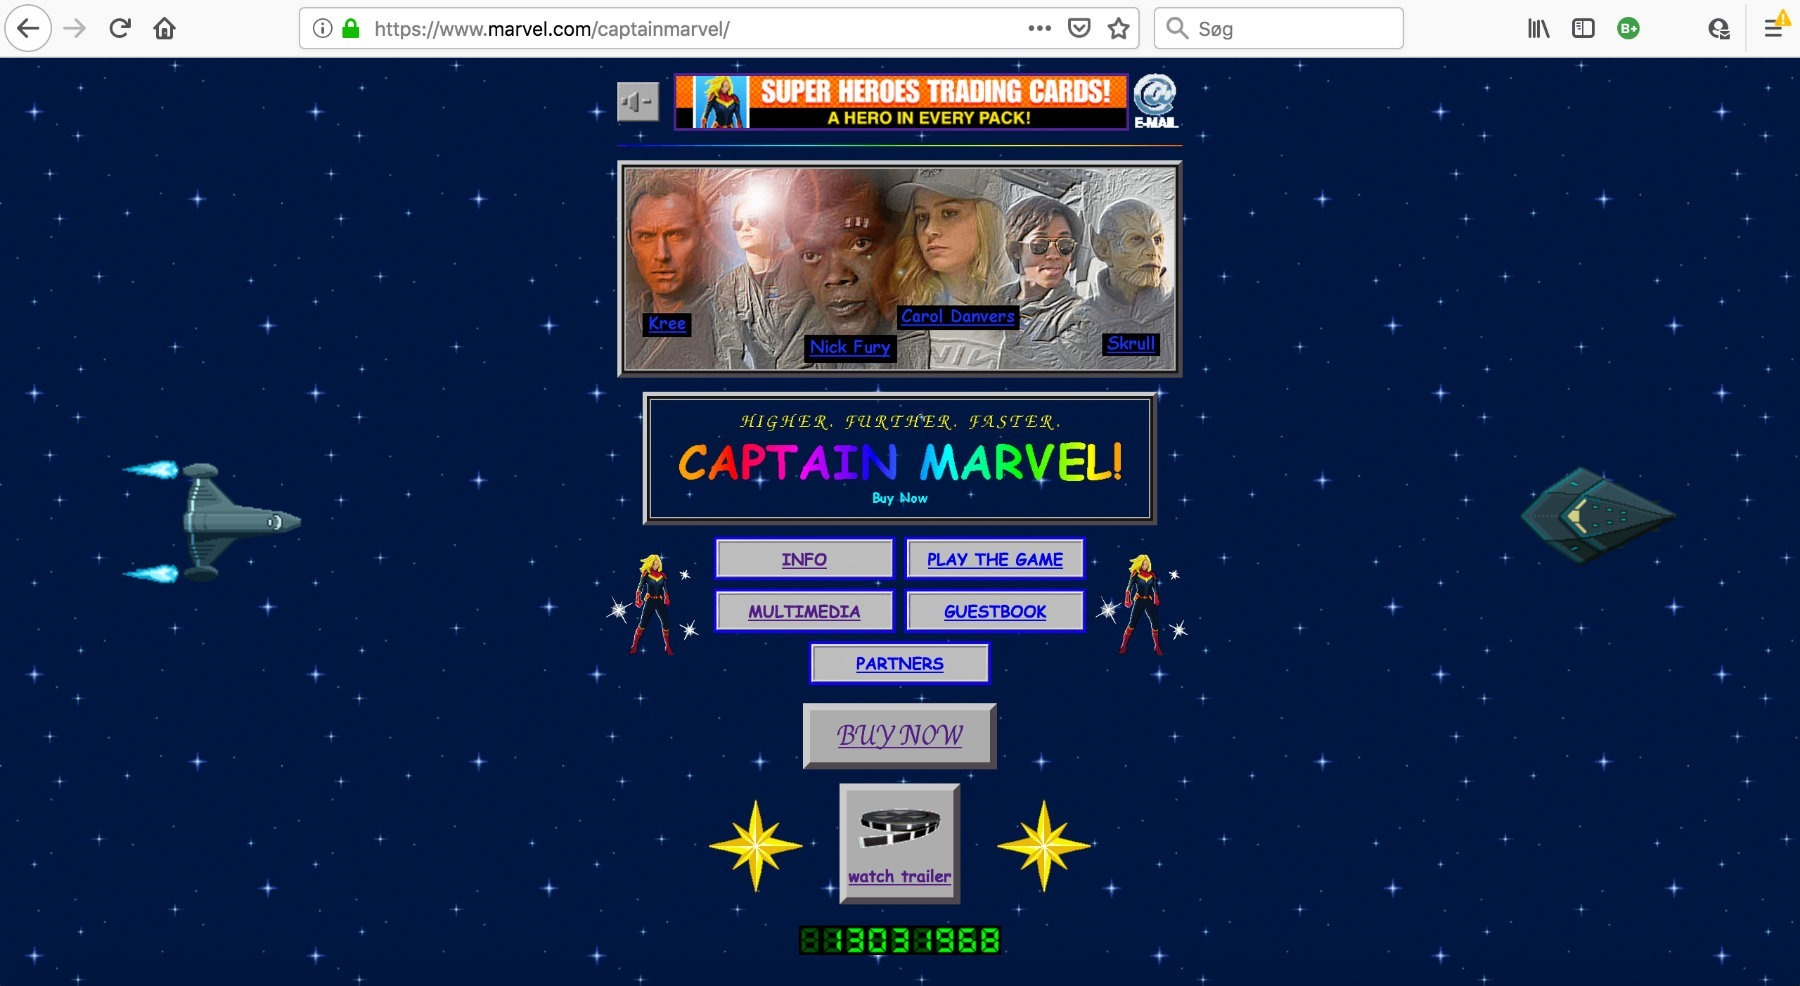 Screendump of Captain Marvel Movie Microsite